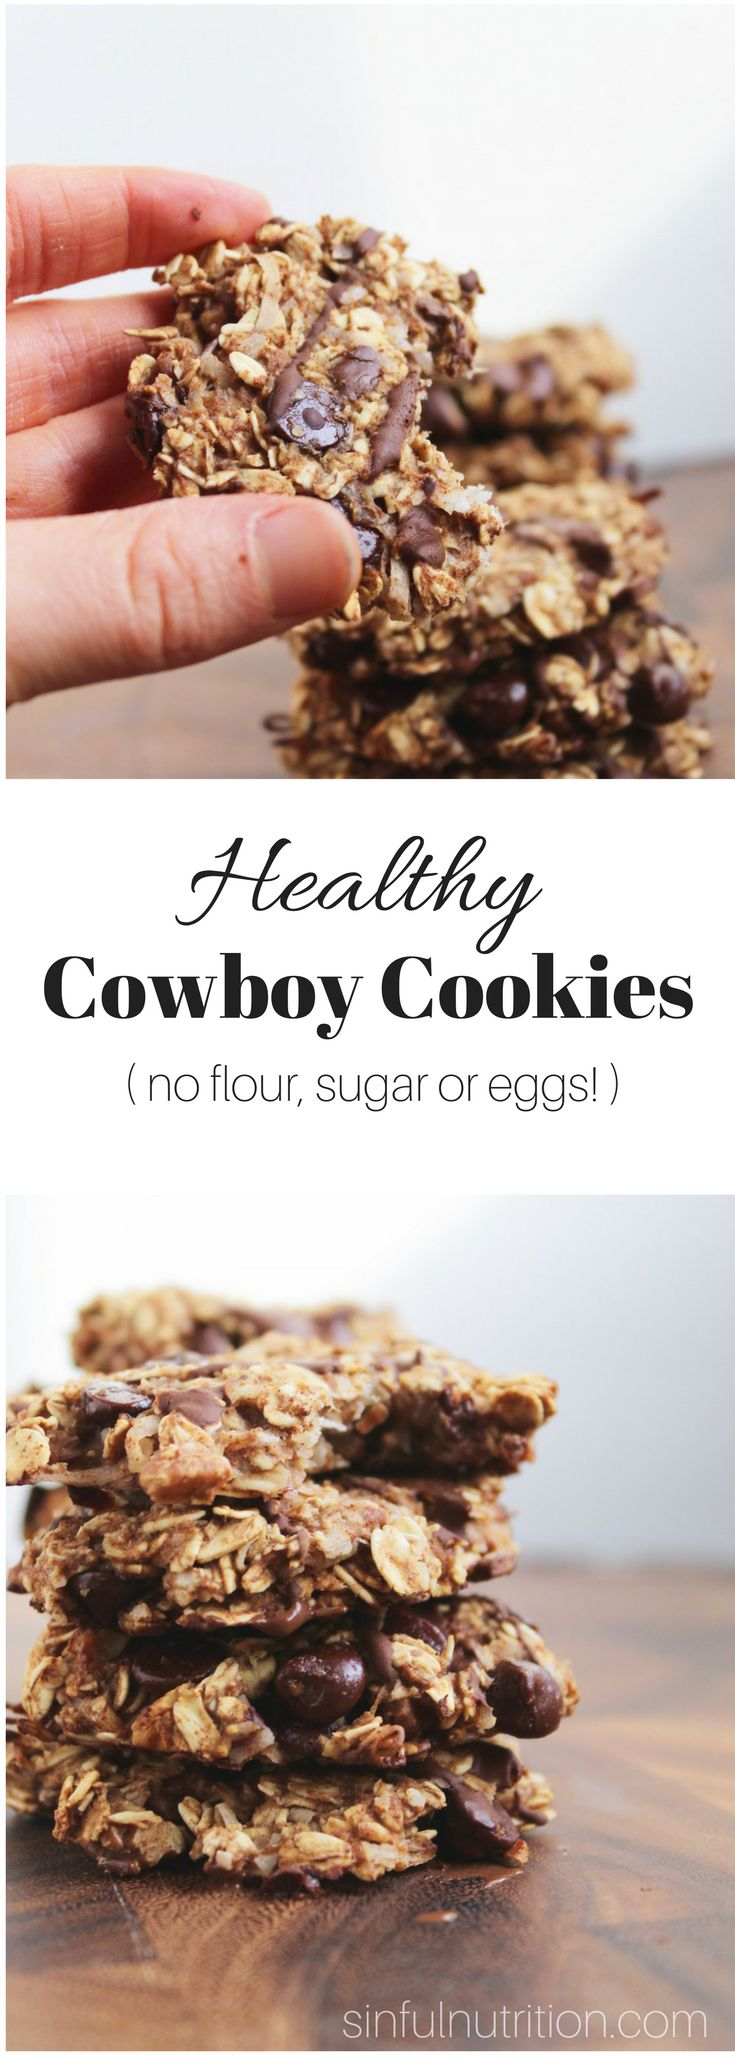 Healthy Cowboy Cookies Recipe (Vegan, Gluten-Free) -- Made with only 9 ingredients, with no added oils, sugars, flours, or eggs! | @sinfulnutrition | www.sinfulnutrition.com